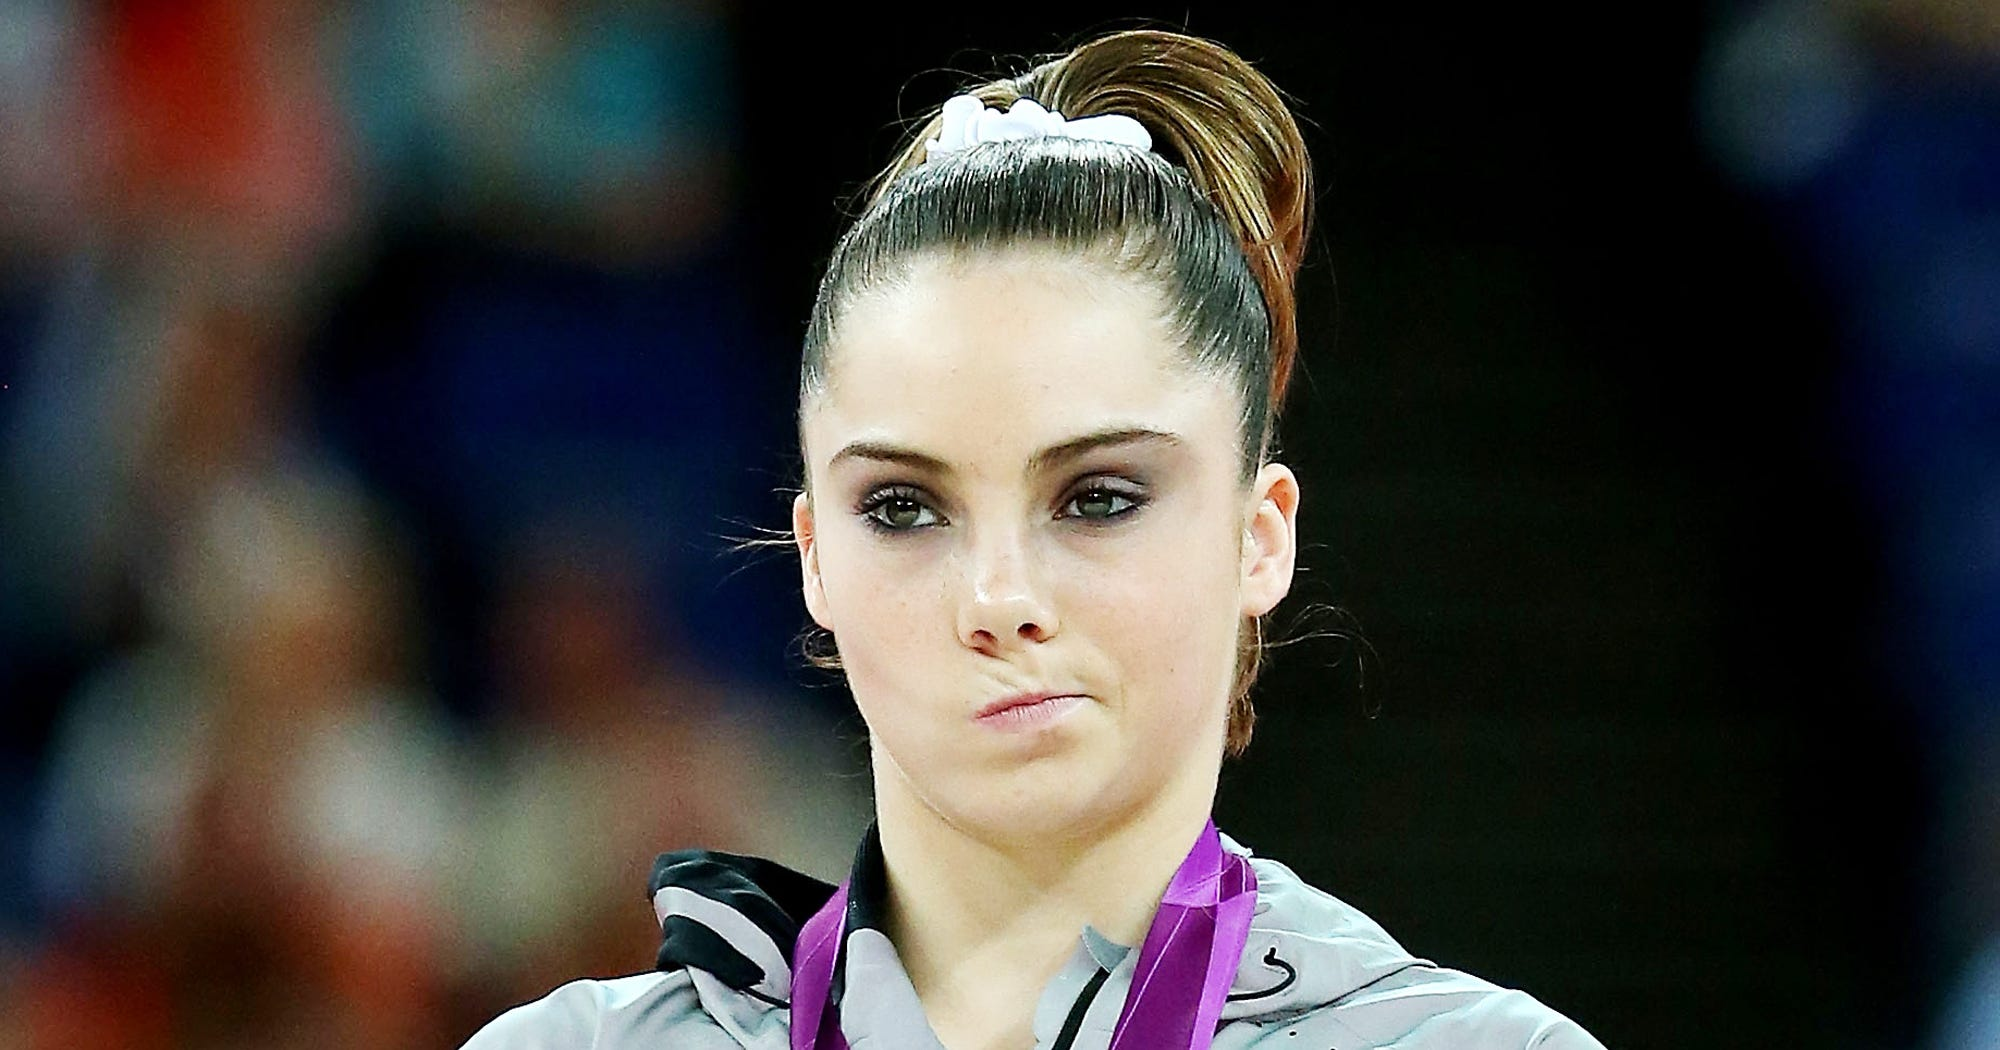 Mckayla Maroney Is Unimpressed With Criticism Of Her Looks